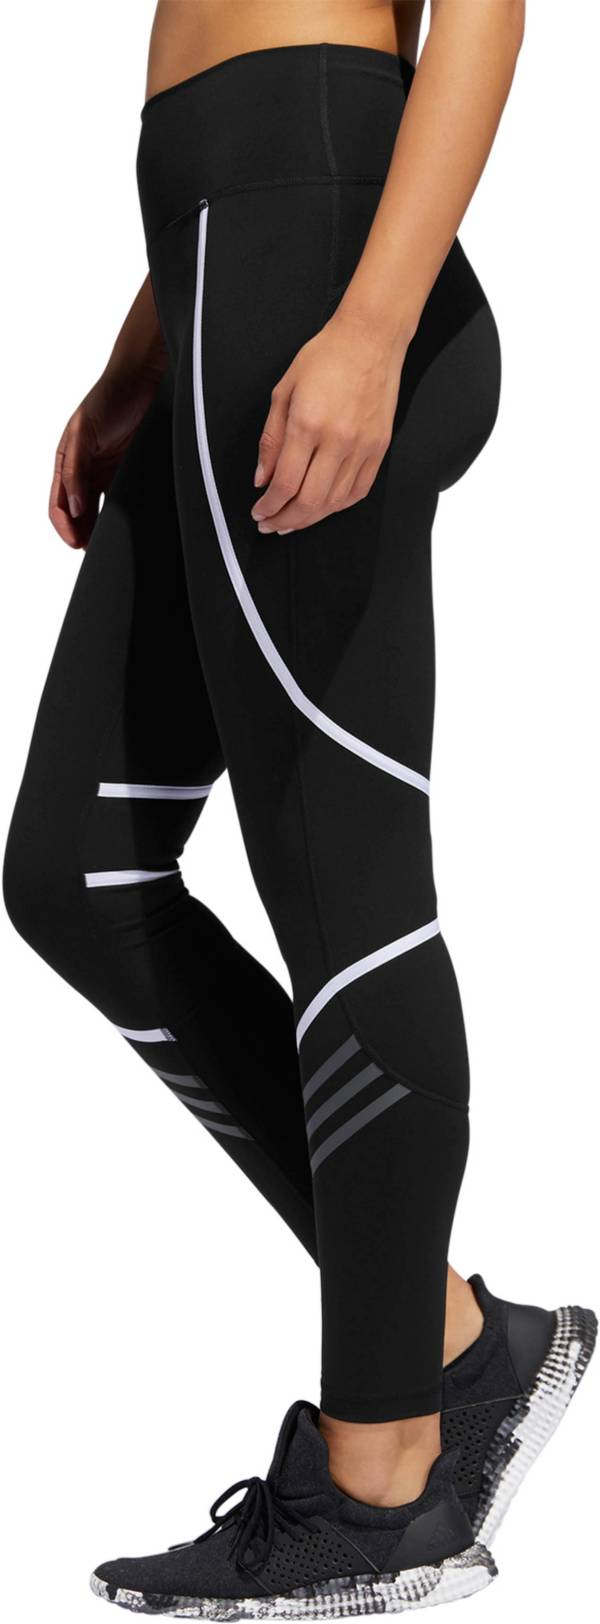 adidas Women's Believe This Elastic Wrap 7/8 Tights product image